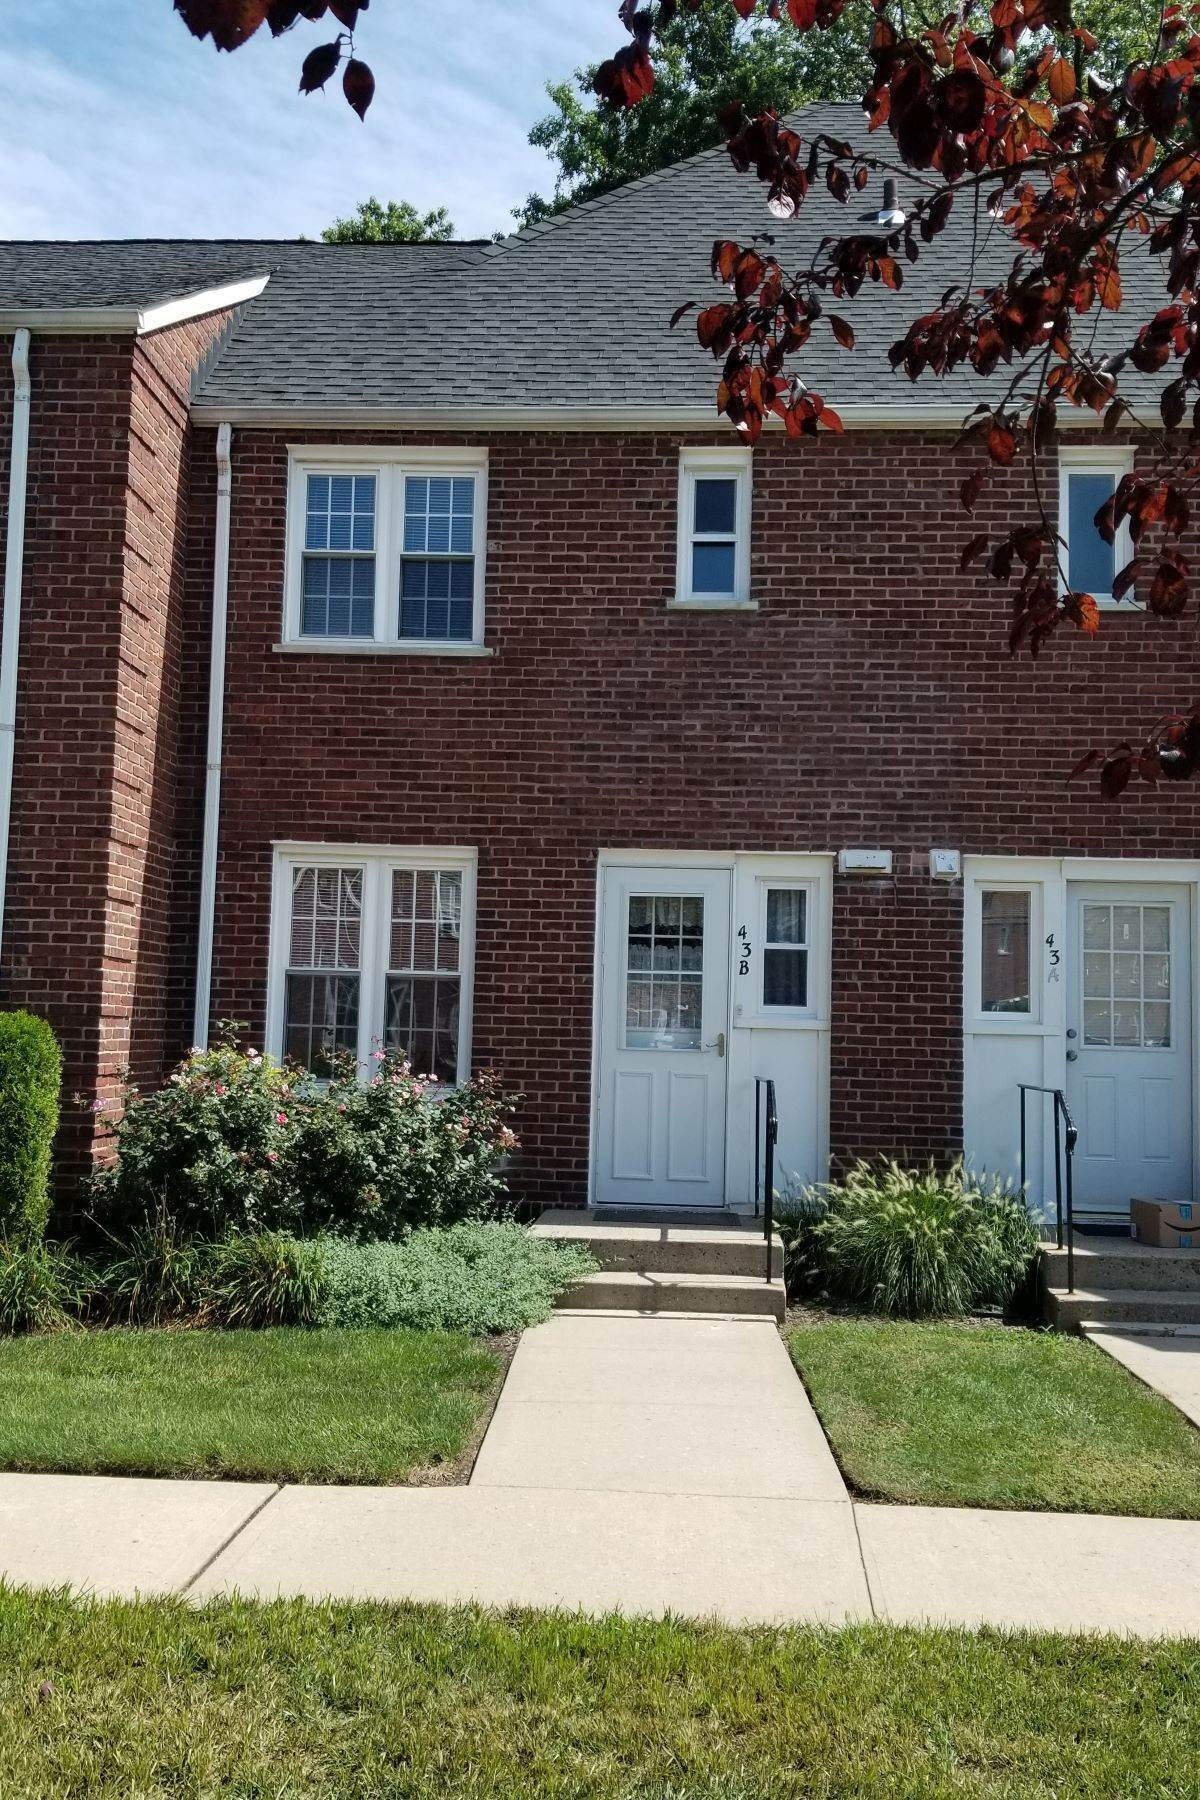 townhouses at Two Bedroom Townhouse 43 Parkway Village, #B Cranford, New Jersey 07016 United States